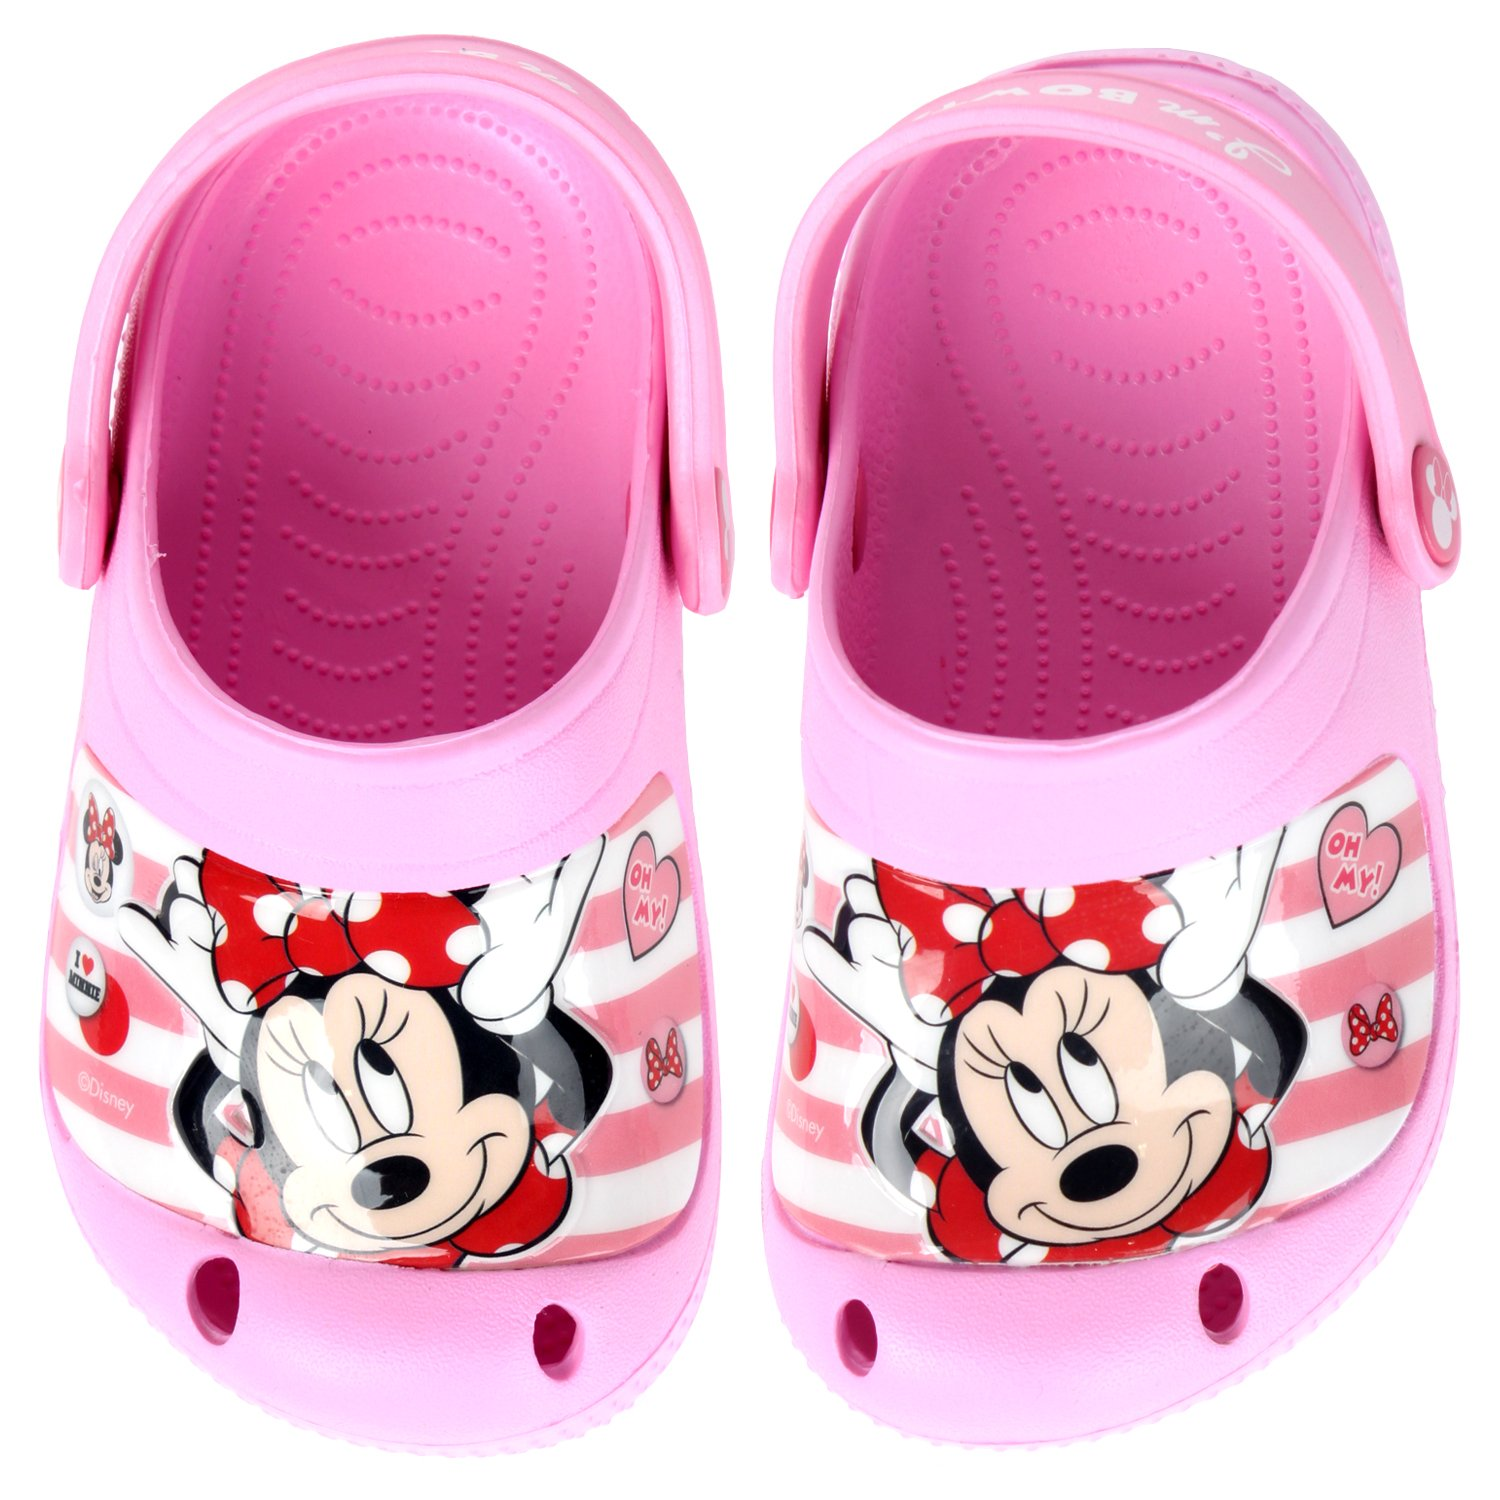 Disney Minnie Mouse Bowtiful Girl's Pink EVA Sandals (Parallel Import/Generic Product) (8 M US Toddler)